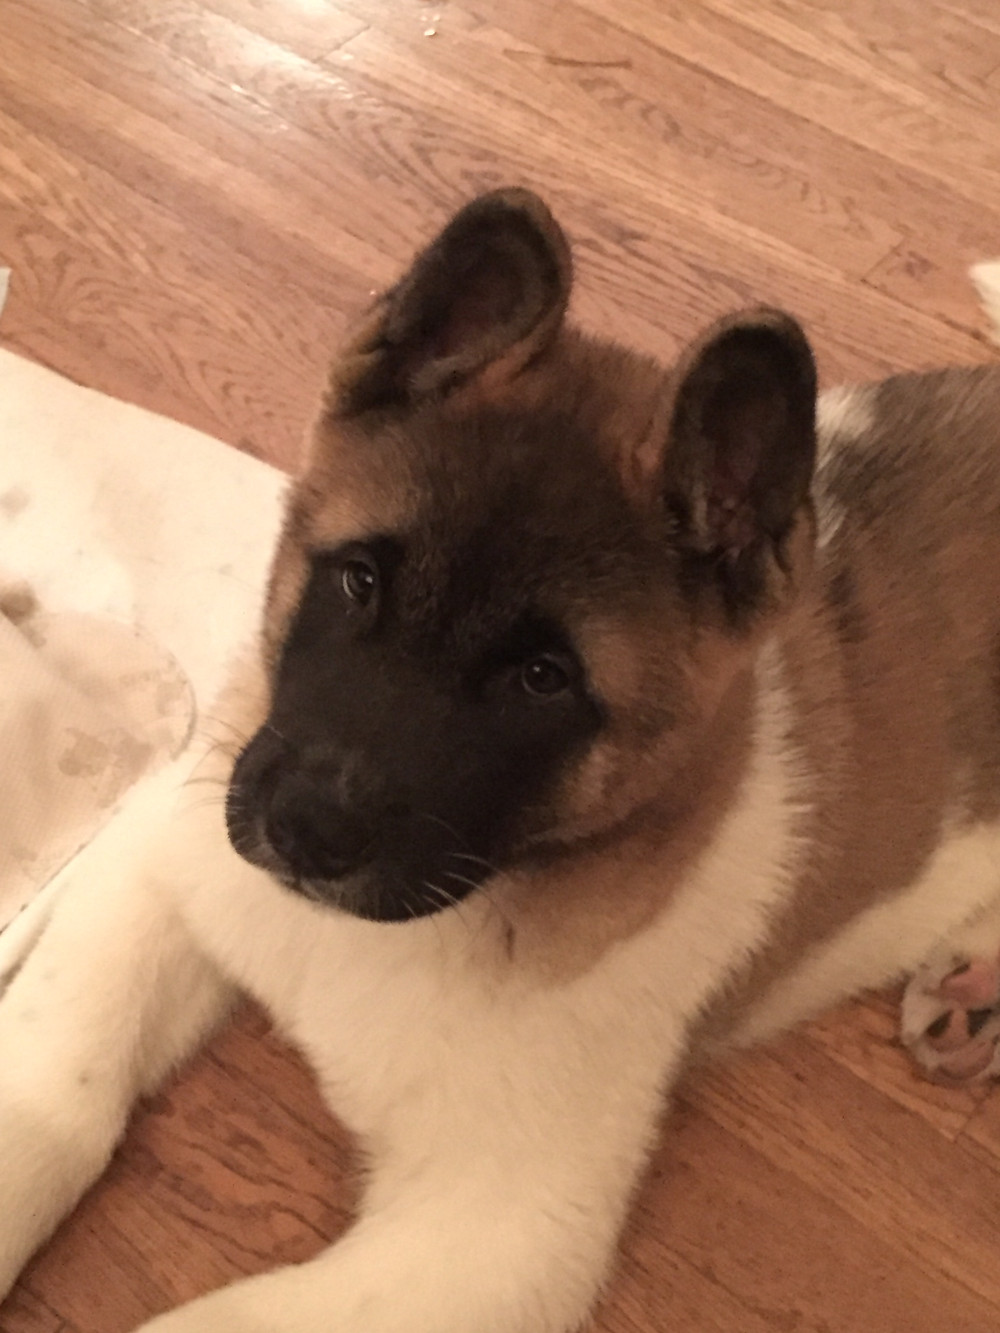 Coda, an Akita puppy with severe fear issues